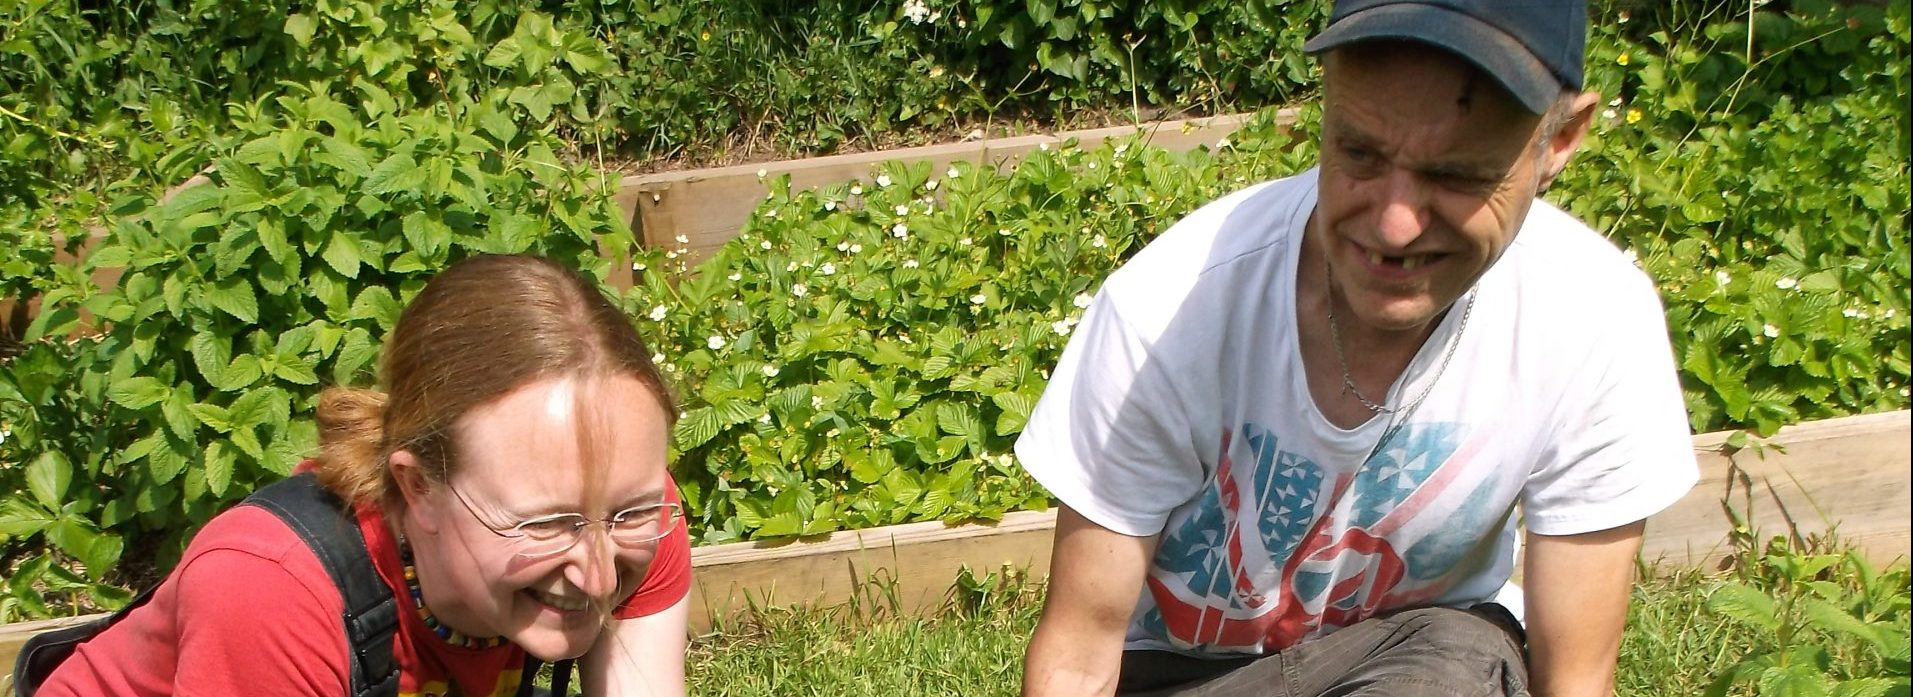 Volunteers with learning disabilities gardening at St Werburghs City Farm